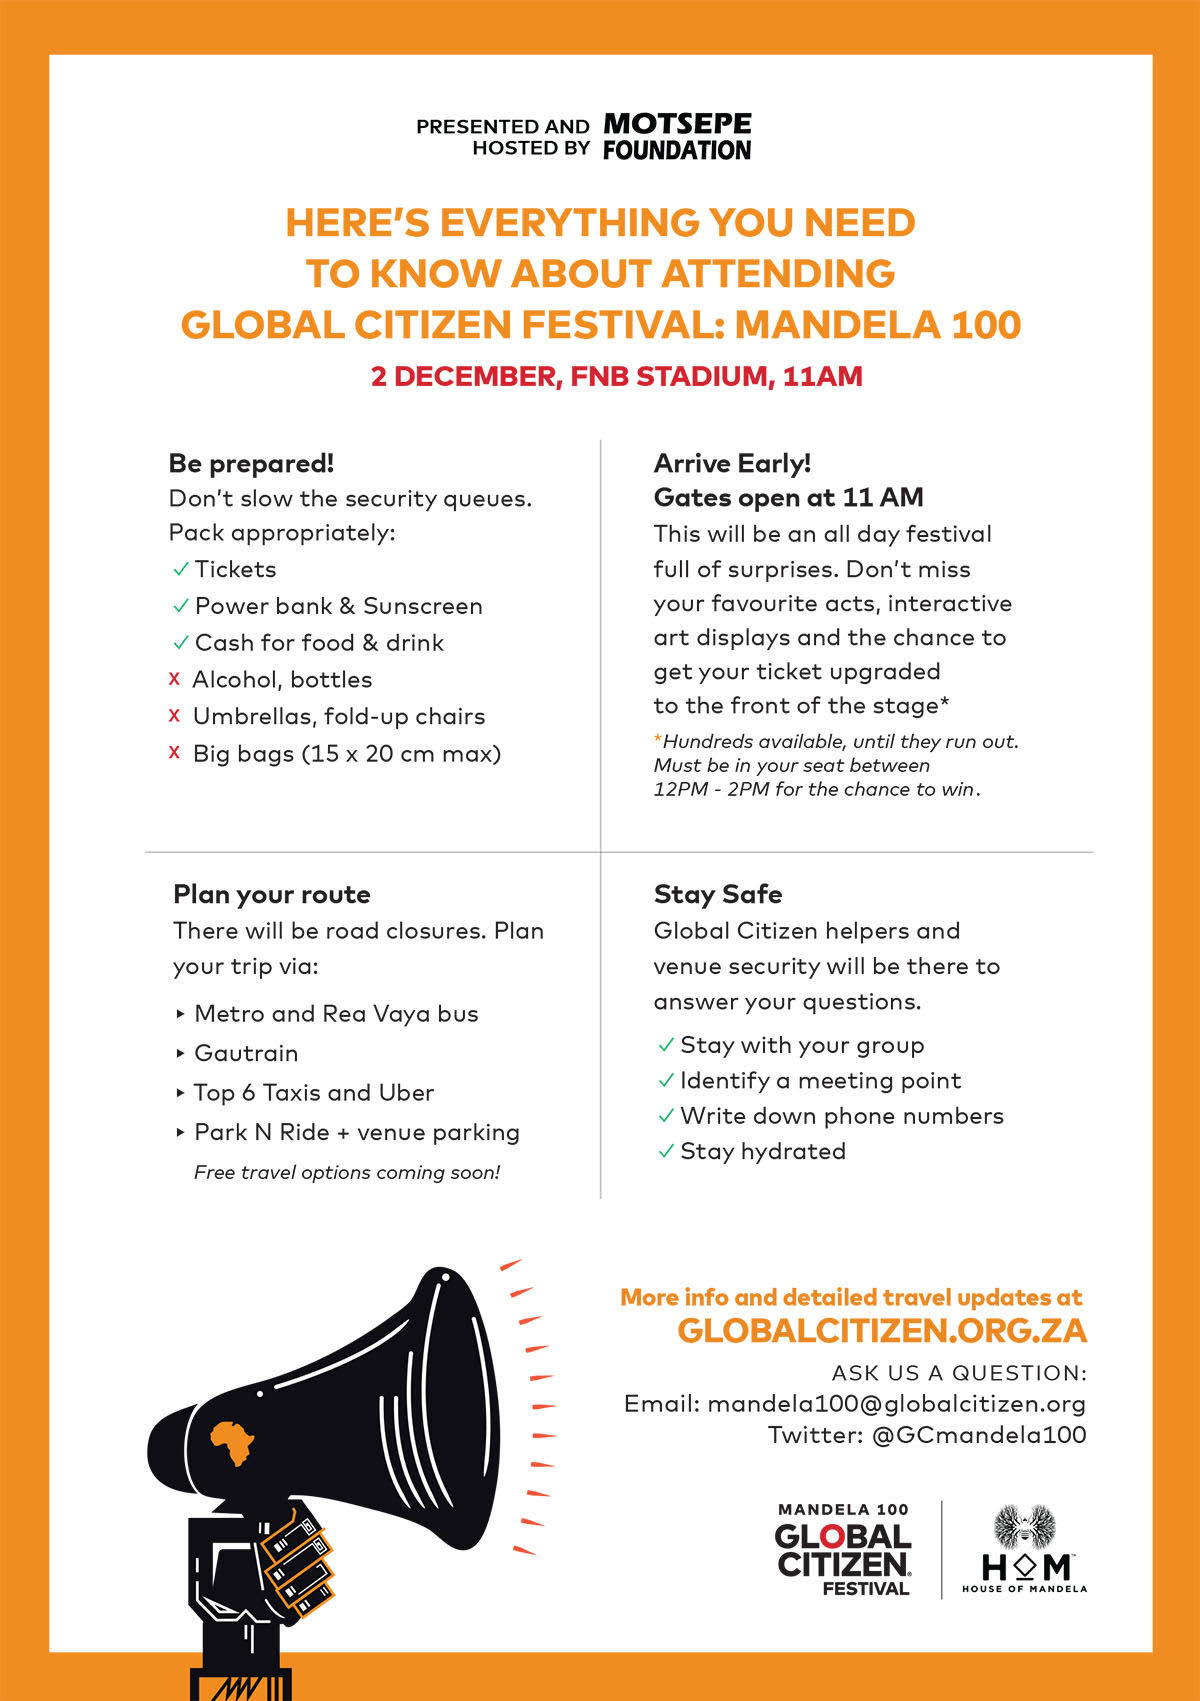 7 Great Reasons to Get to Global Citizen Festival: Mandela 100 Early